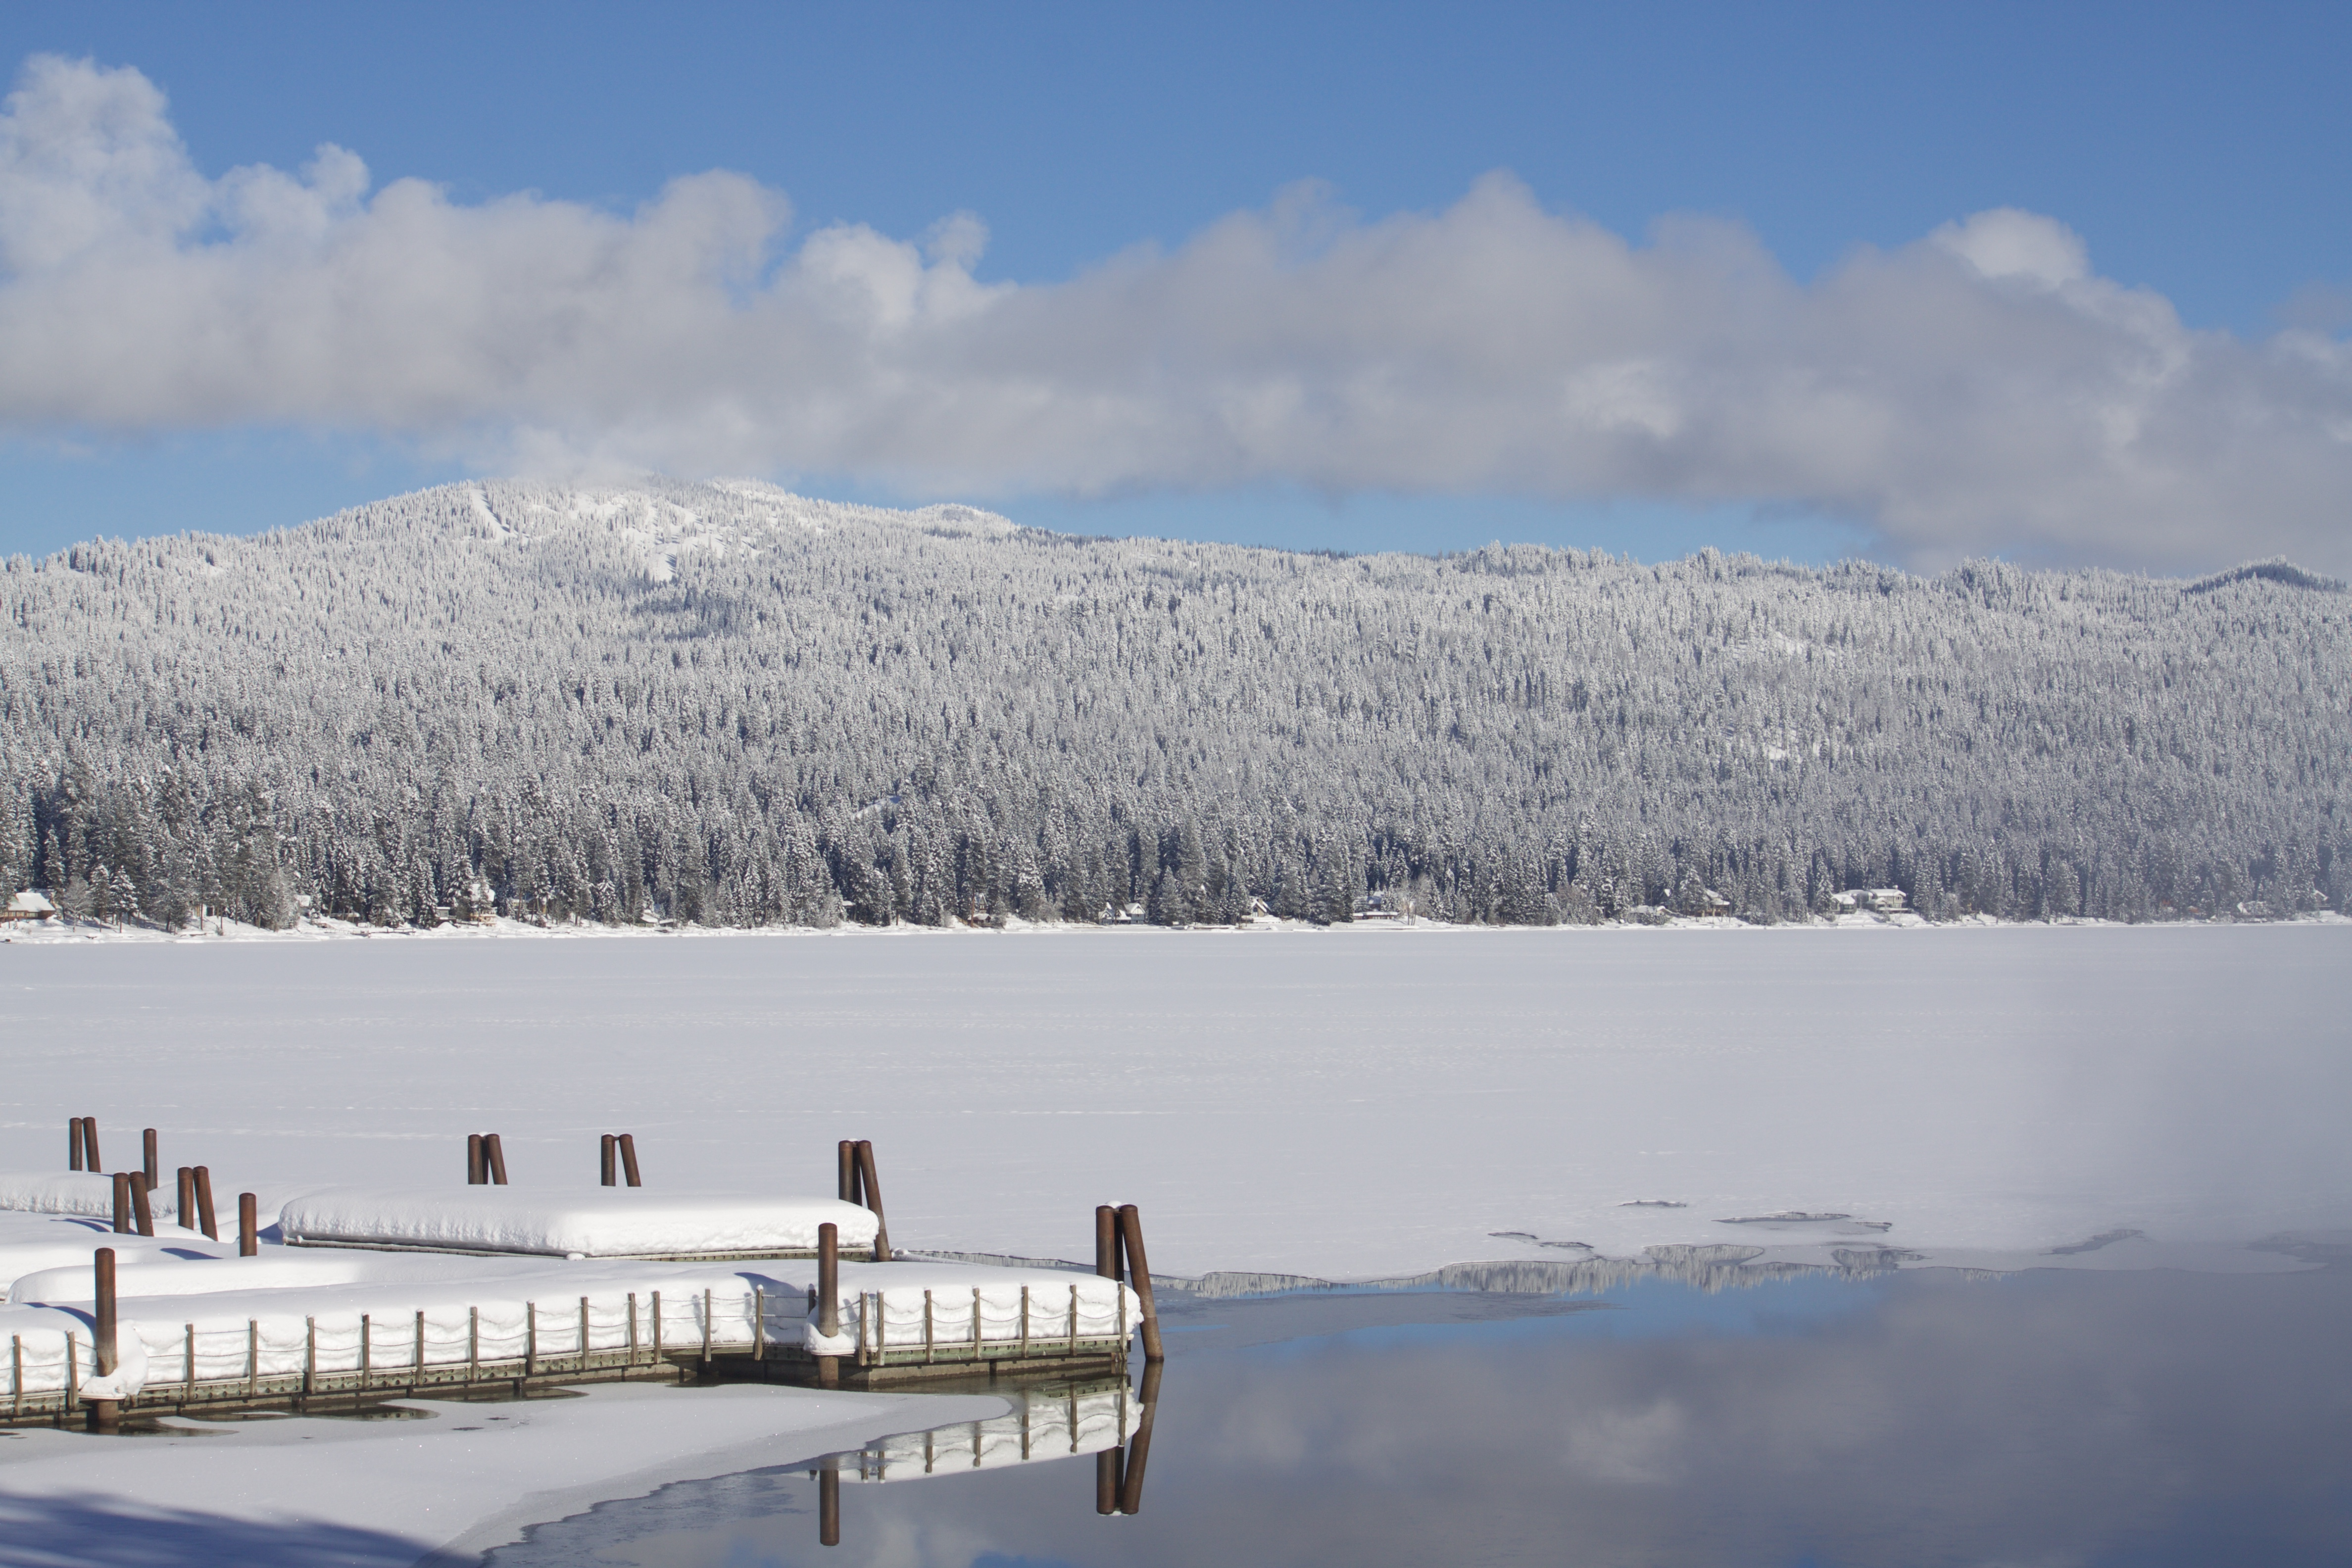 A view of a frozen lake with mountains in the background.